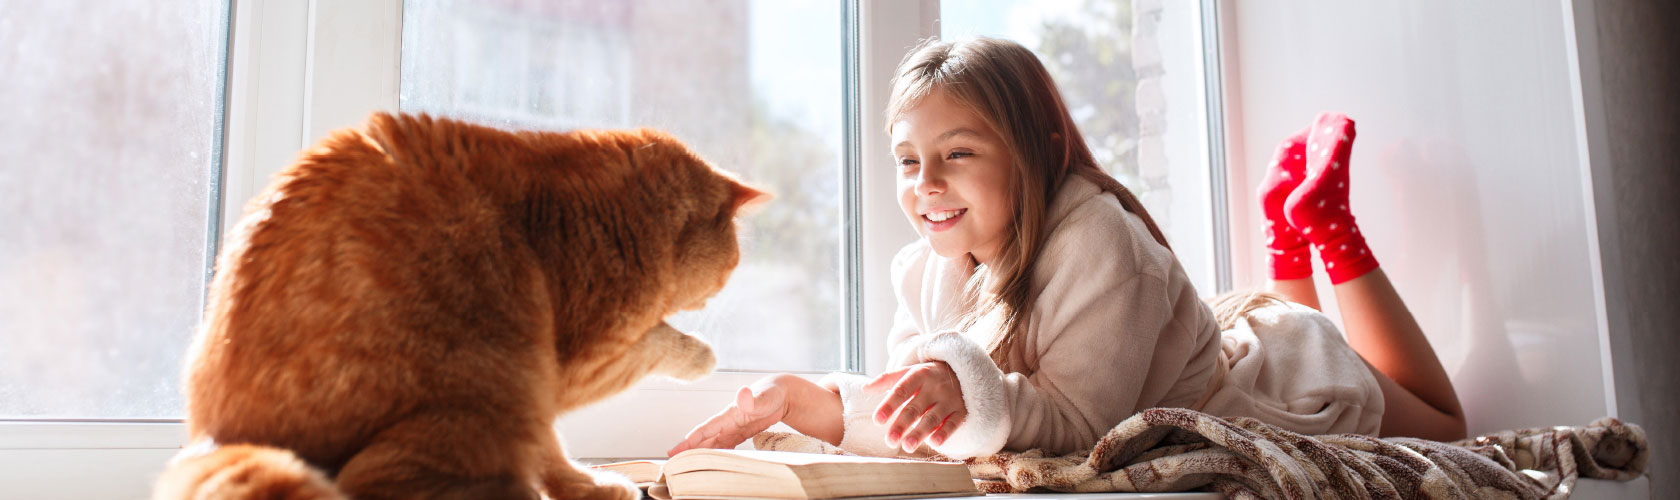 small girl in a robe and red socks looking at an orange cat licking its paws